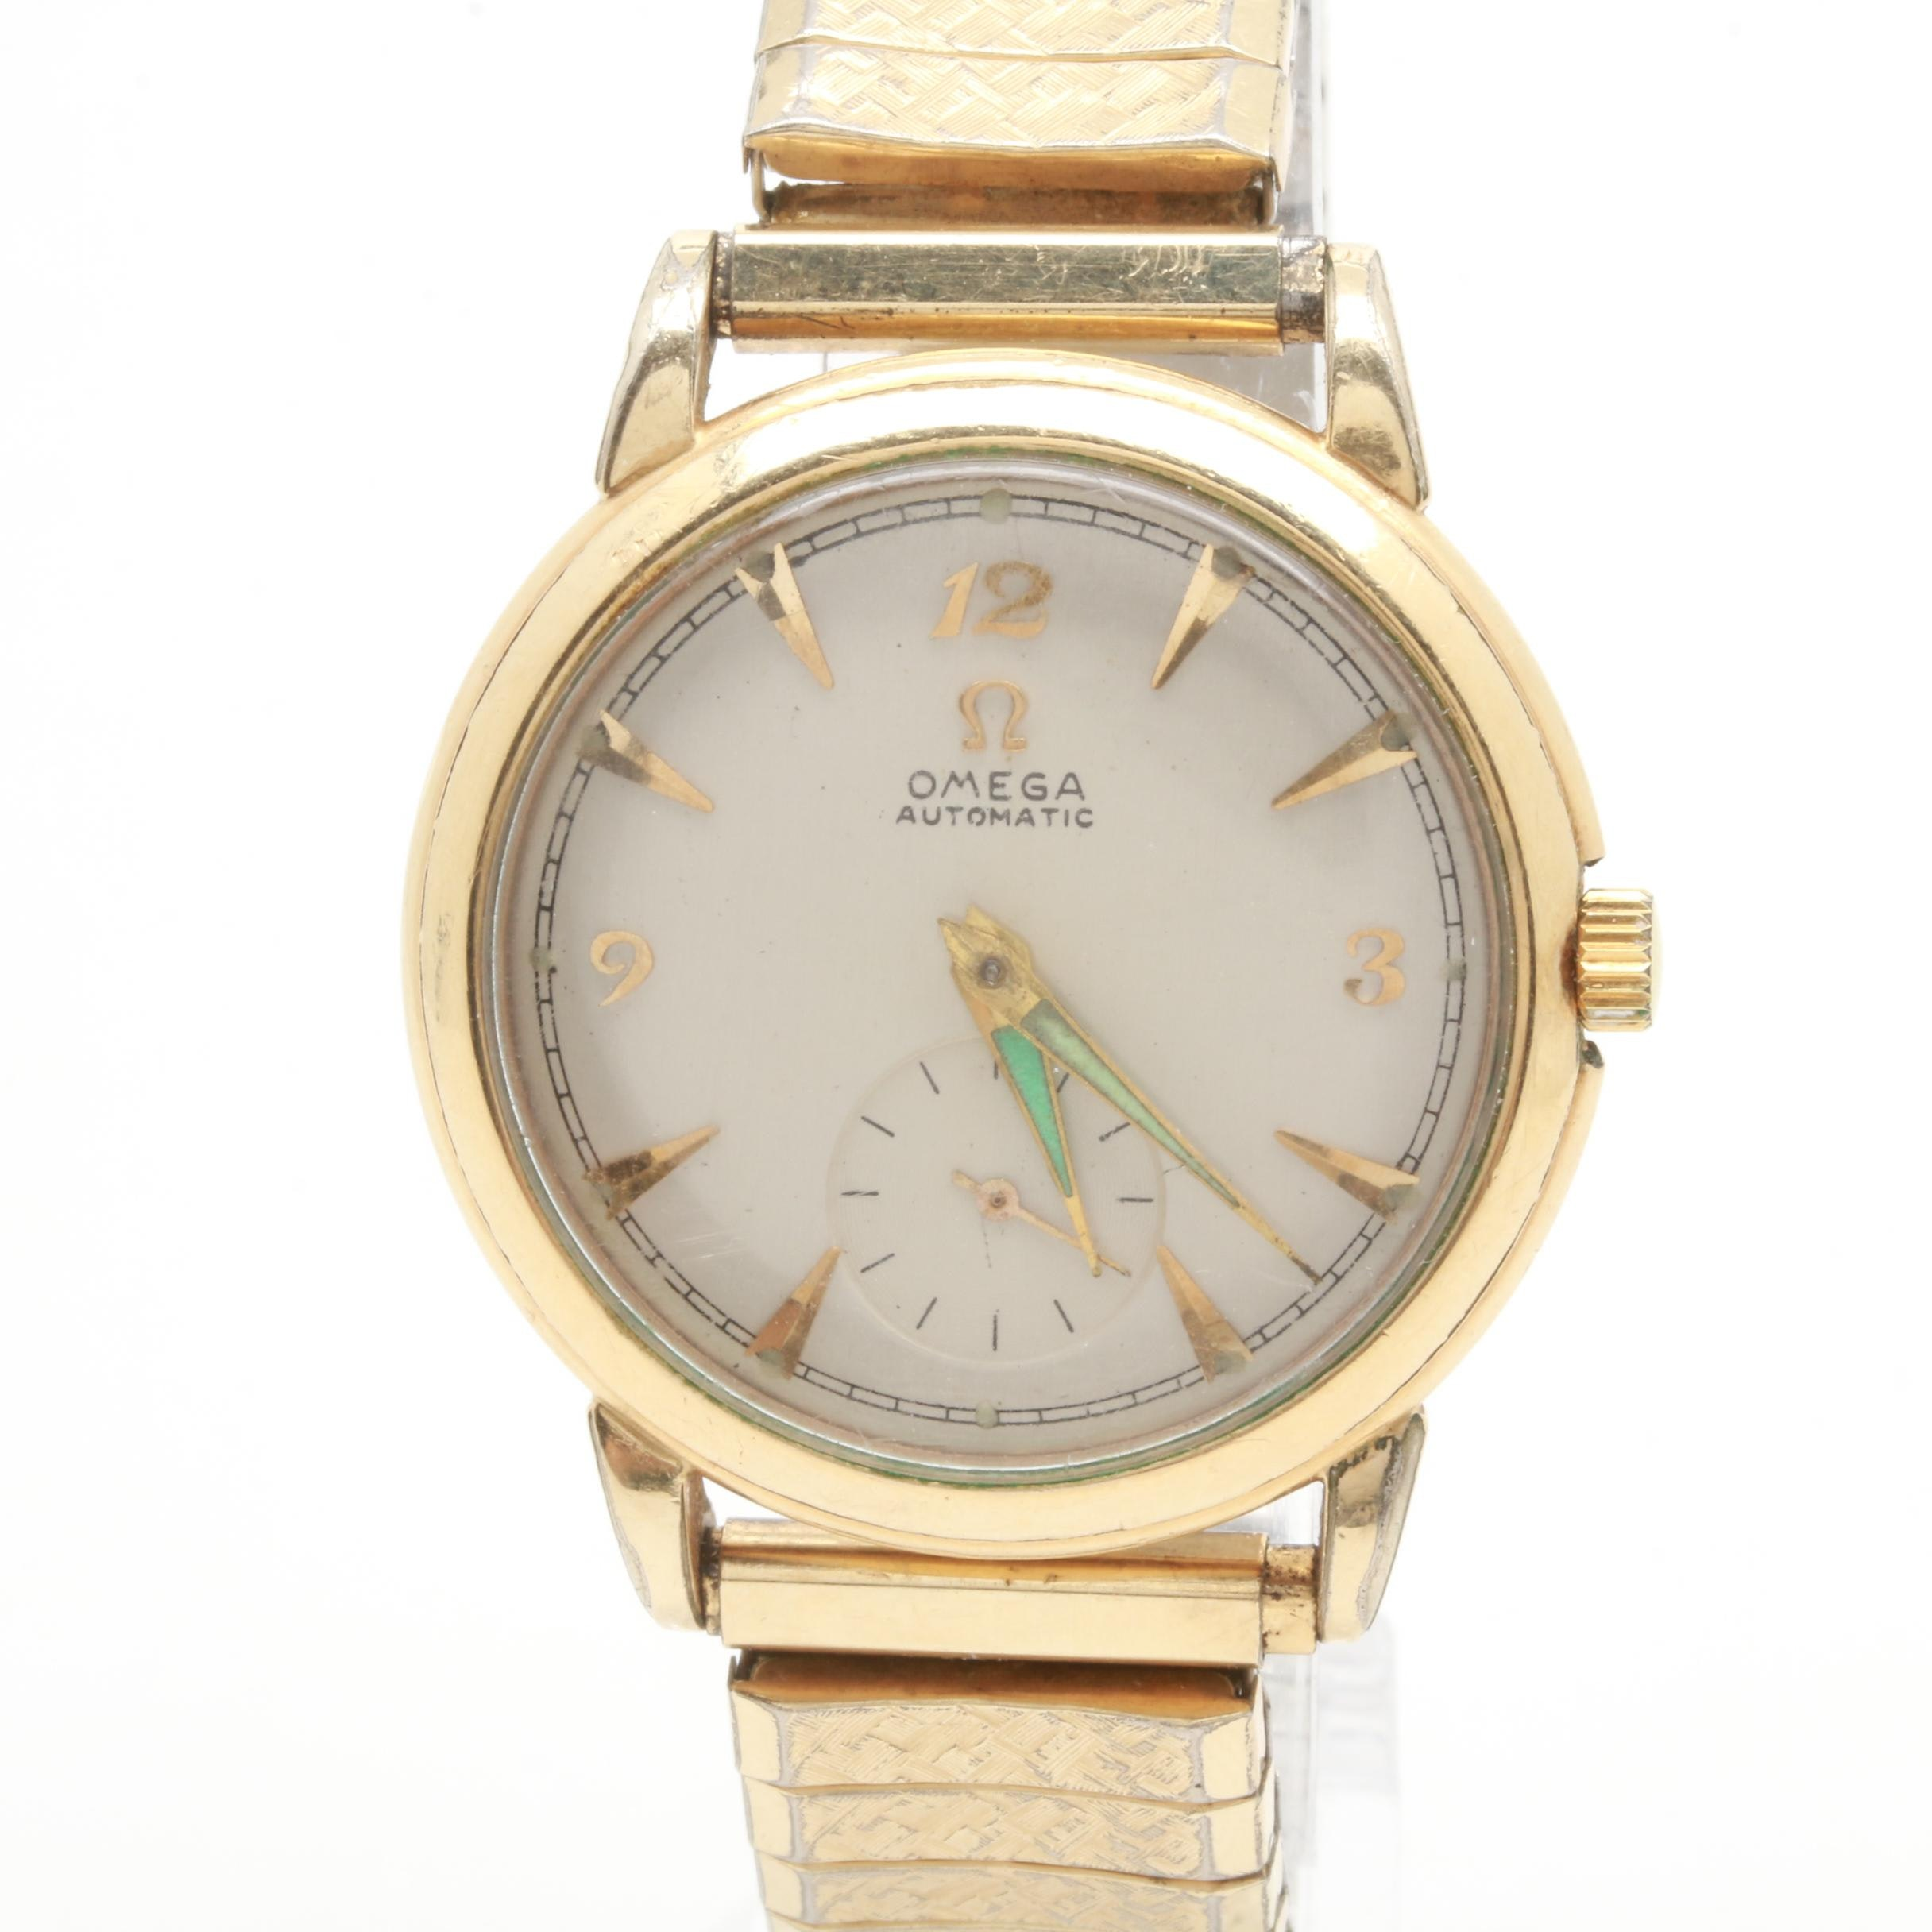 Omega Gold Filled Automatic Wristwatch